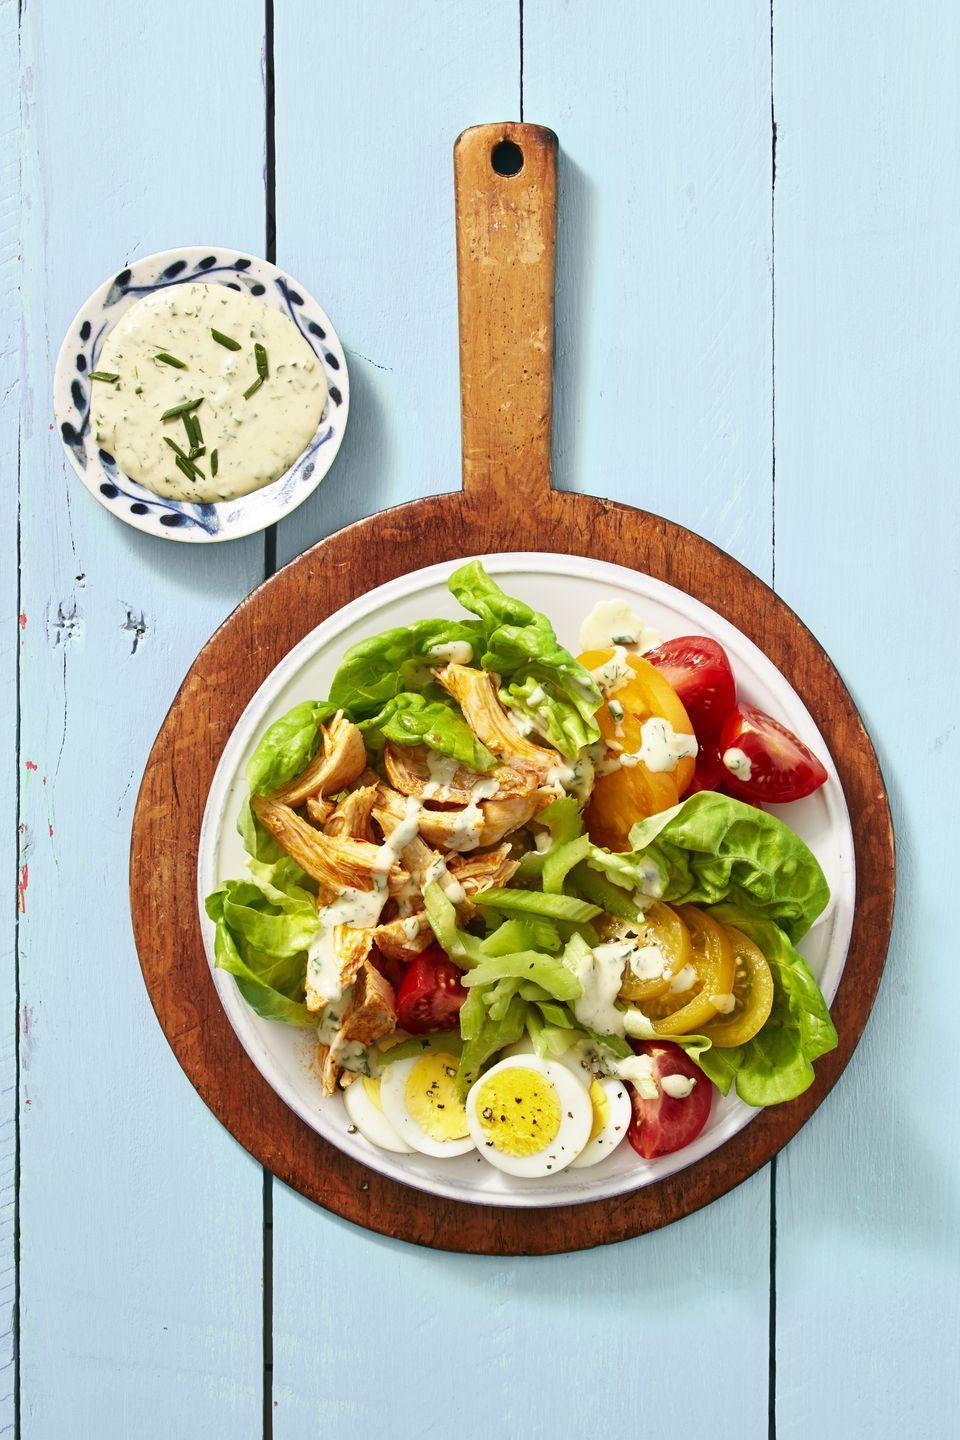 """<p>Consider serving hard-cooked eggs with a side of fiery buffalo chicken salad.</p><p><a href=""""https://www.goodhousekeeping.com/food-recipes/a39936/buffalo-chicken-cobb-salad-recipe/"""" rel=""""nofollow noopener"""" target=""""_blank"""" data-ylk=""""slk:Get the recipe for Buffalo Chicken Cobb Salad »"""" class=""""link rapid-noclick-resp""""><em>Get the recipe for Buffalo Chicken Cobb Salad »</em></a></p>"""